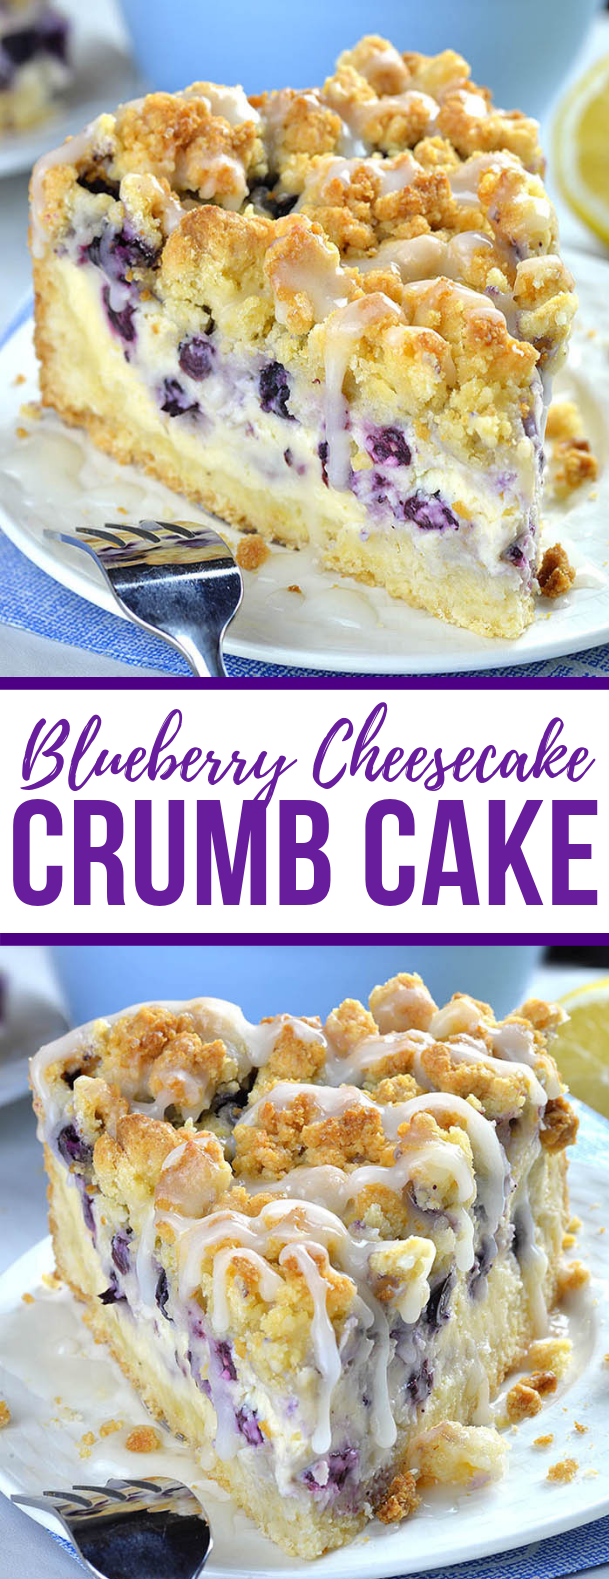 Blueberry Cheesecake Crumb Cake #deliciousdessert #easydessert